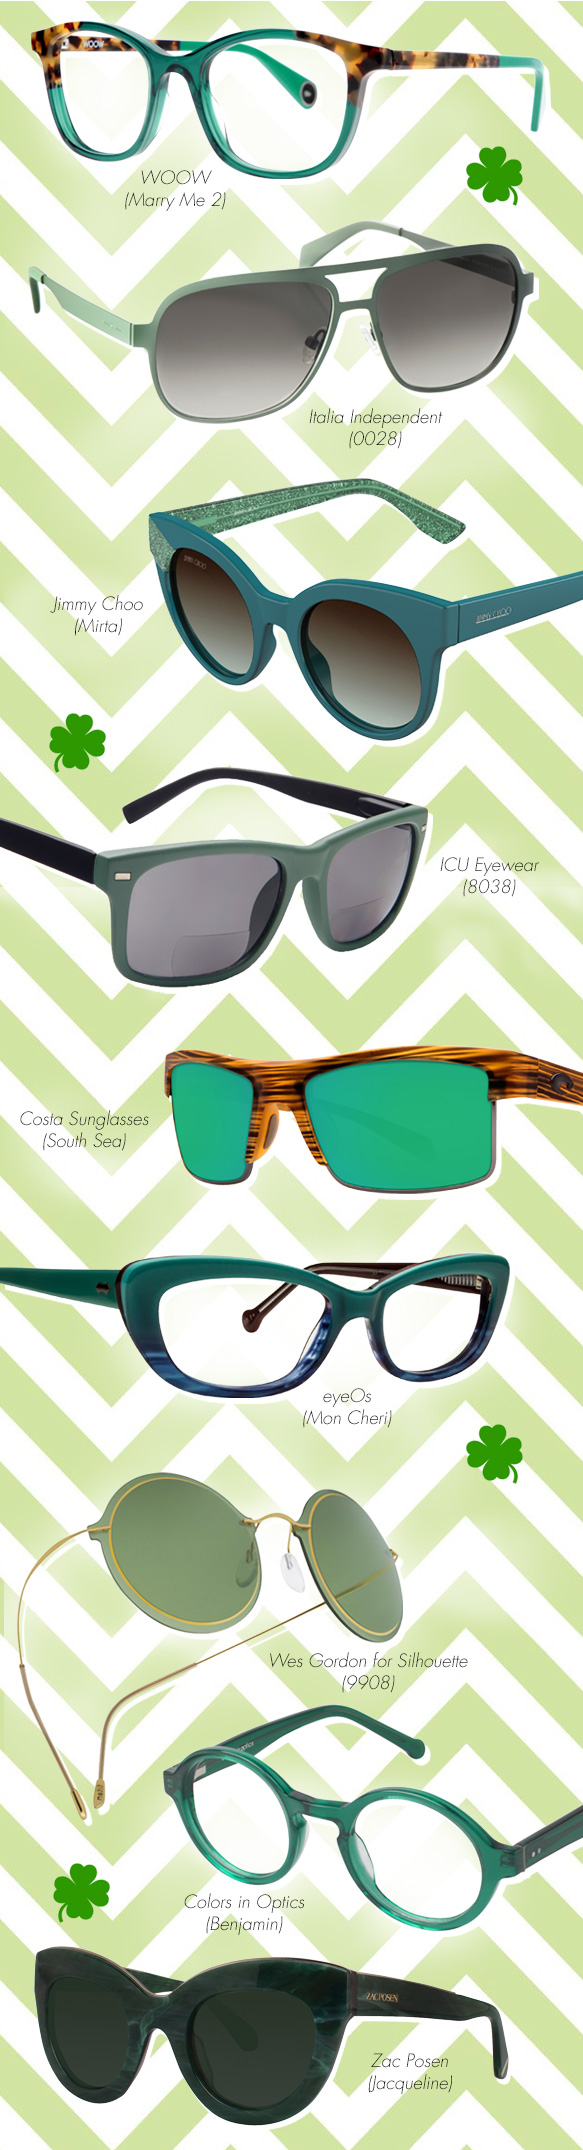 Colors in Optics (Benjamin), Costa Sunglasses (South Sea), Eyebobs (Pussy Cat), eyeOs (Mon Cheri), ICU Eyewear (8038), Italia Independent (0028), Jimmy Choo (Mirta), Wes Gordon for Silhouette (9908), Woow (Marry Me 2), Zac Posen (Jacqueline)